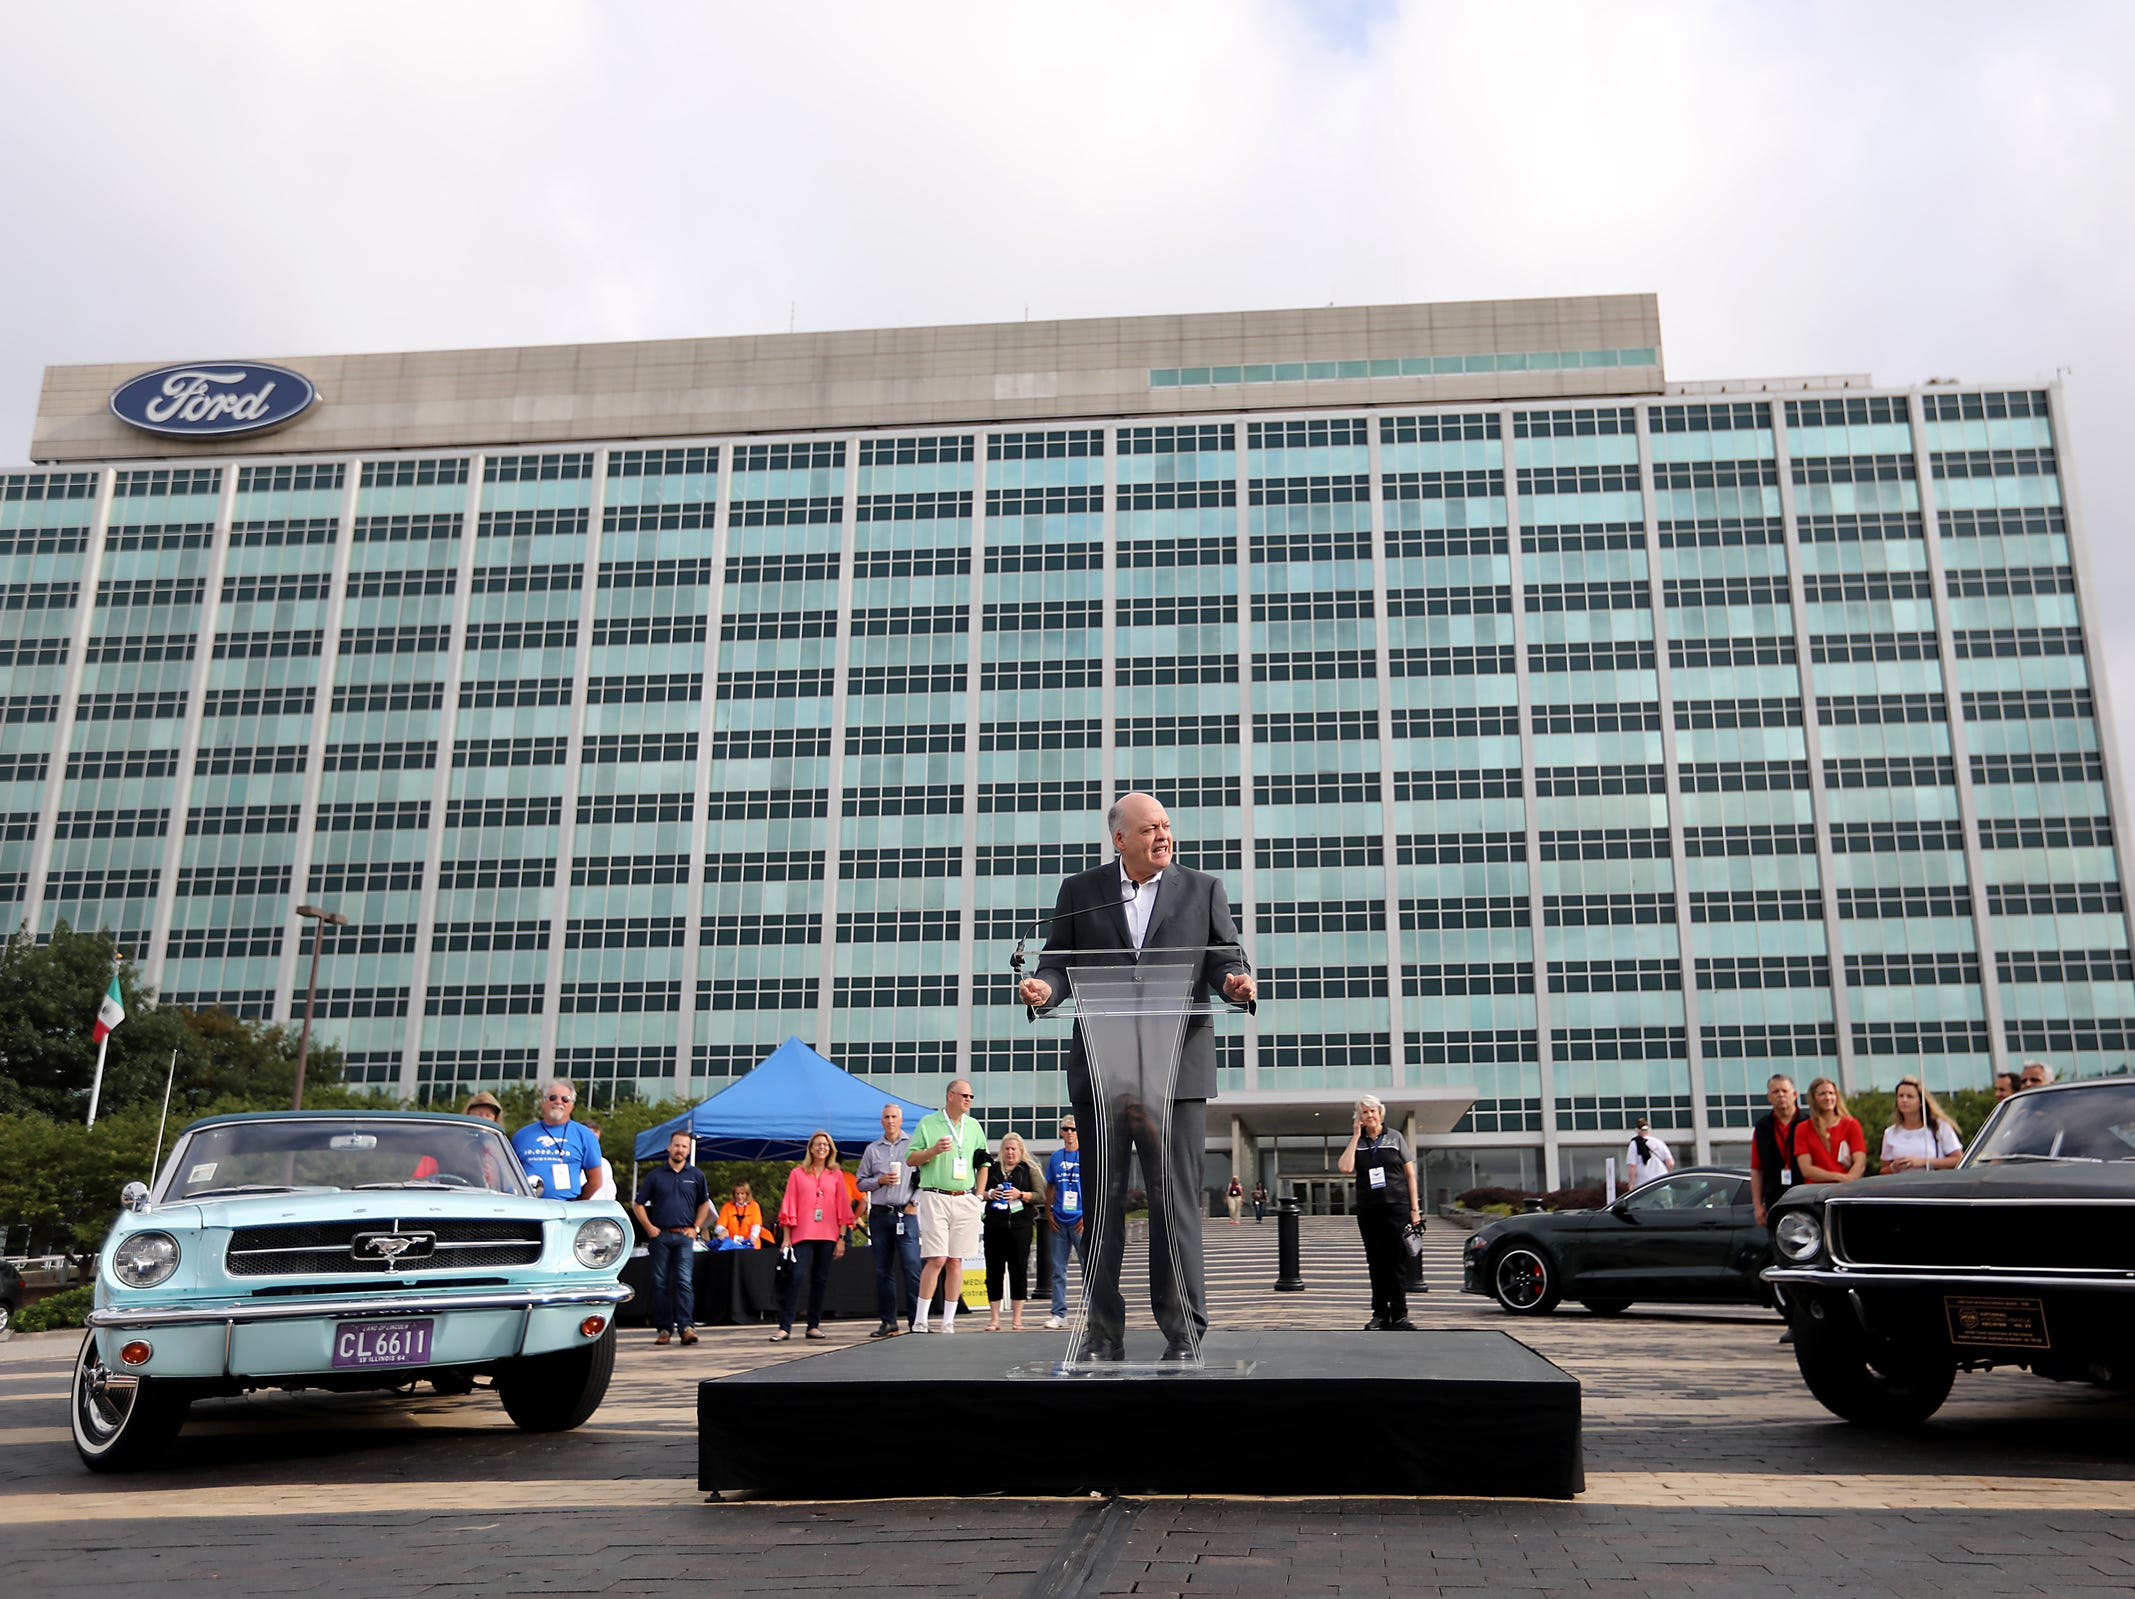 Ford Chief Executive Officer James Hackett speaks, during a Ford event celebrating the 10,000,000 Mustang built at the Ford Motor Company World Headquarters in Dearborn on Wed., Aug 8, 2018.